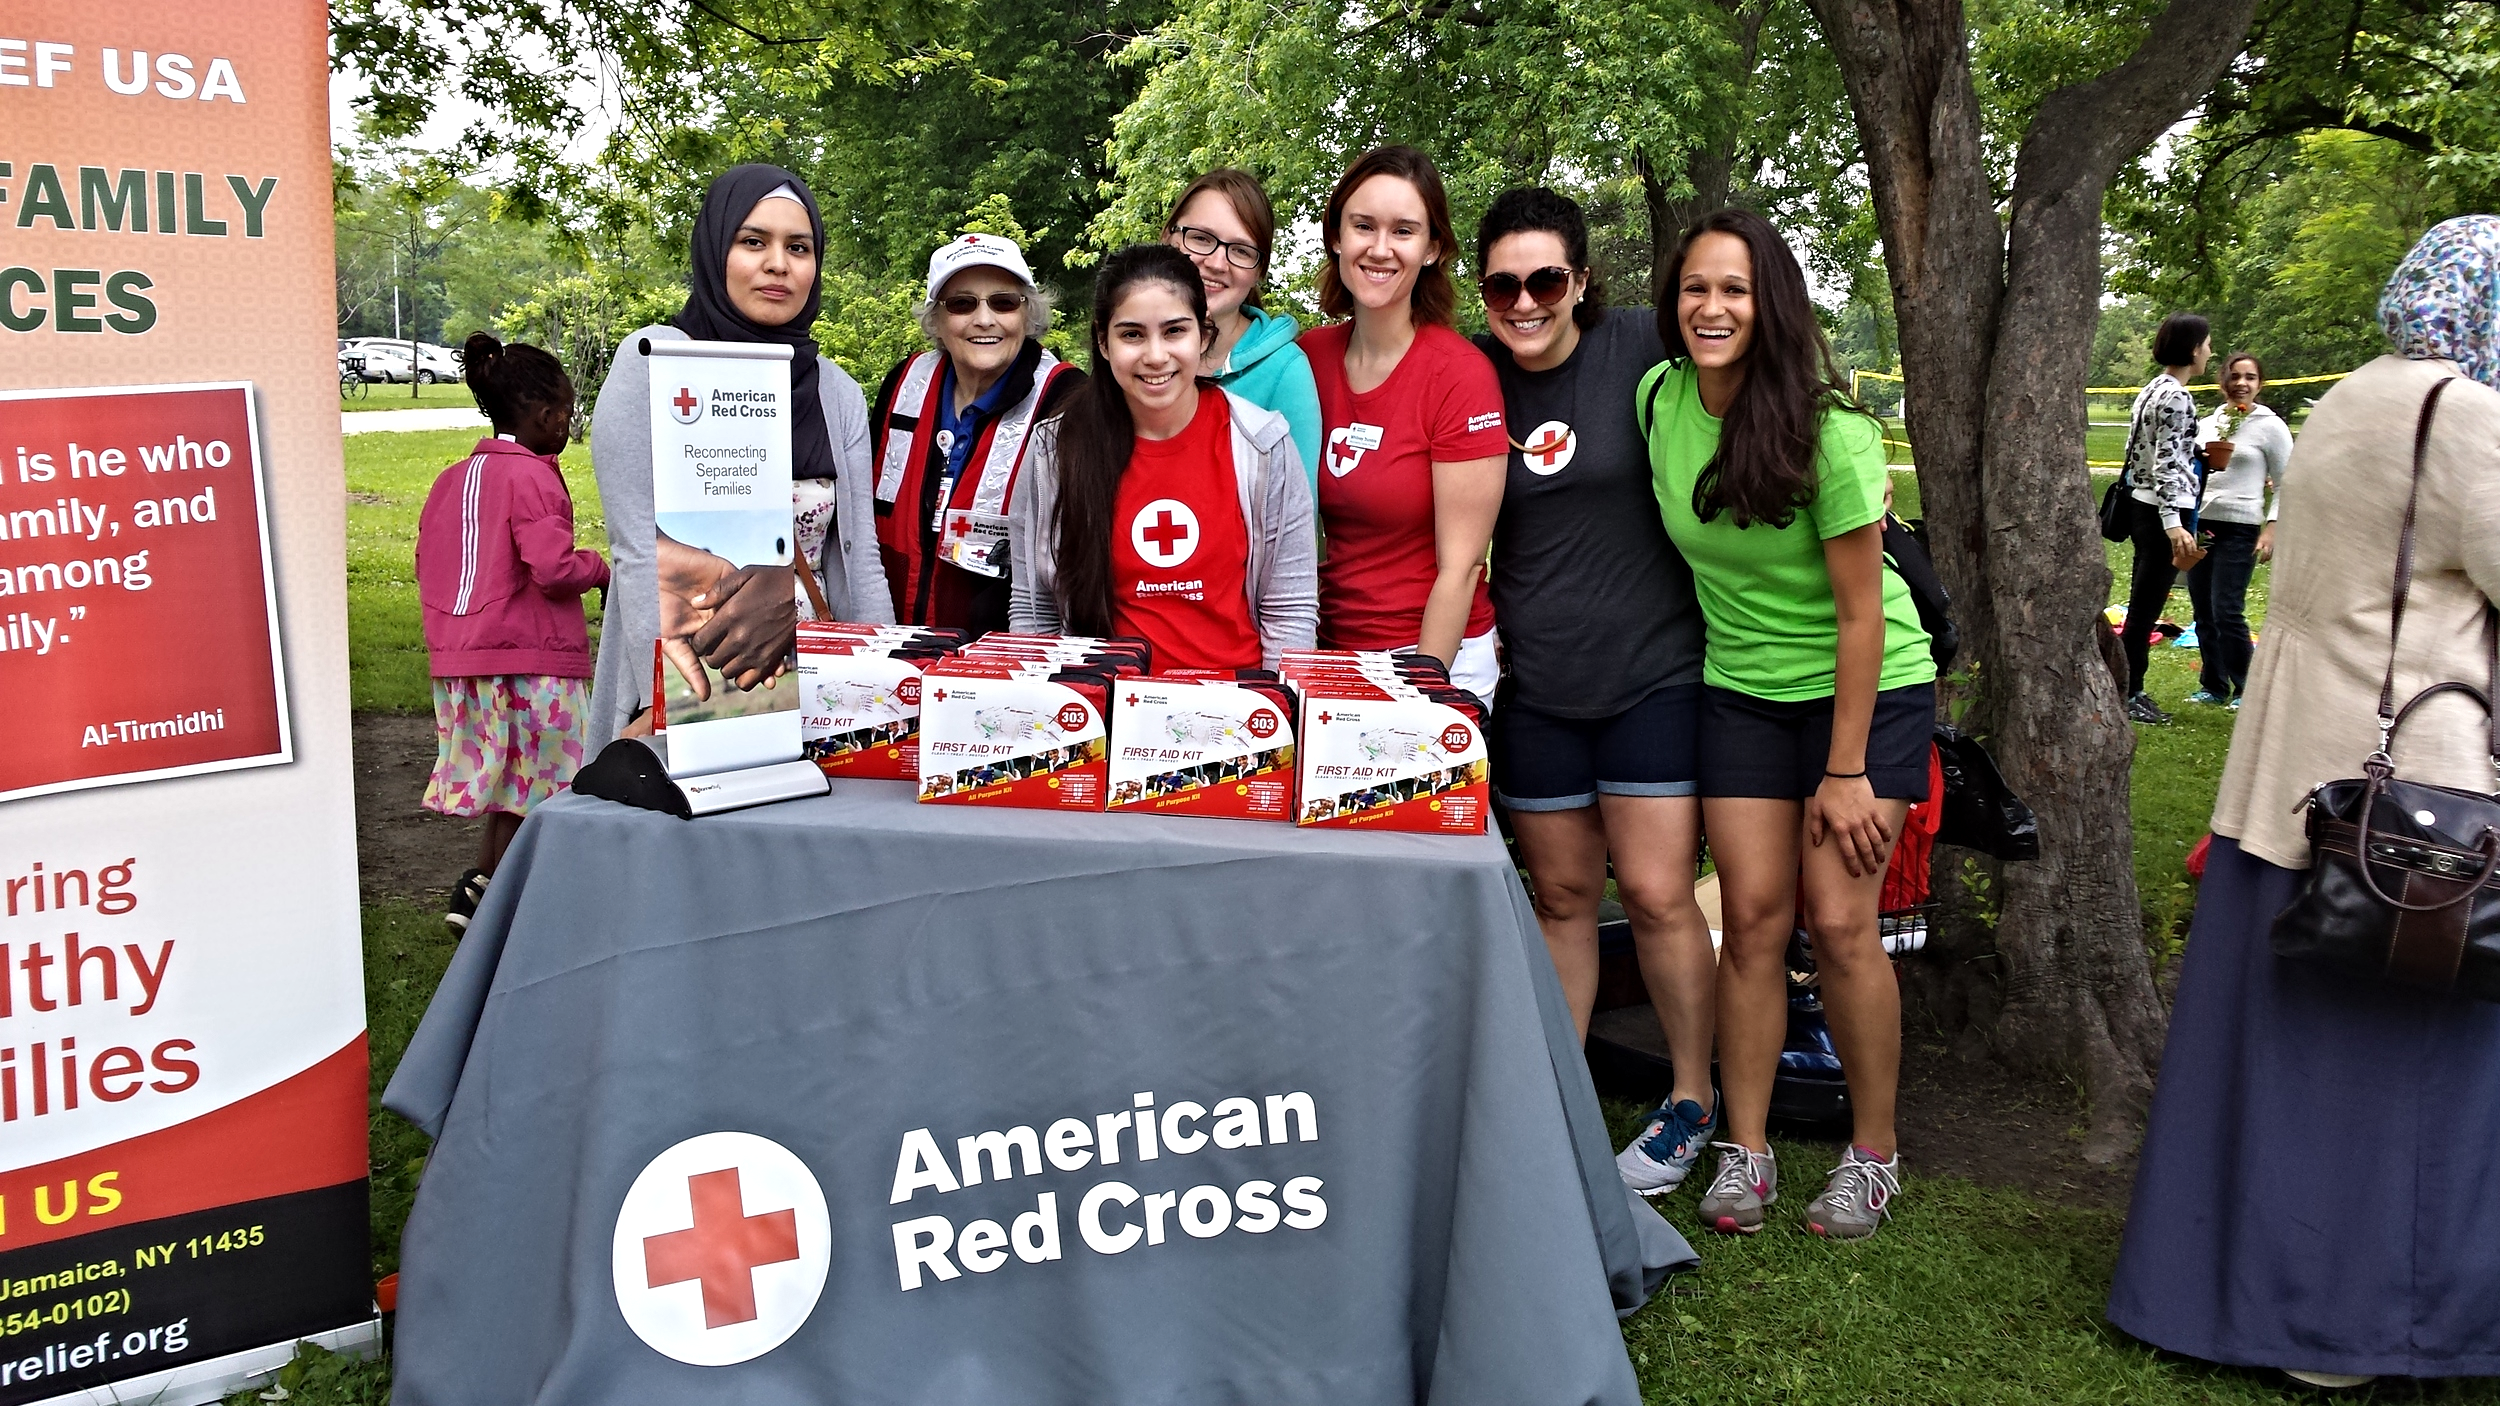 Red Cross staff and volunteers promote the organization's reconnecting families services.